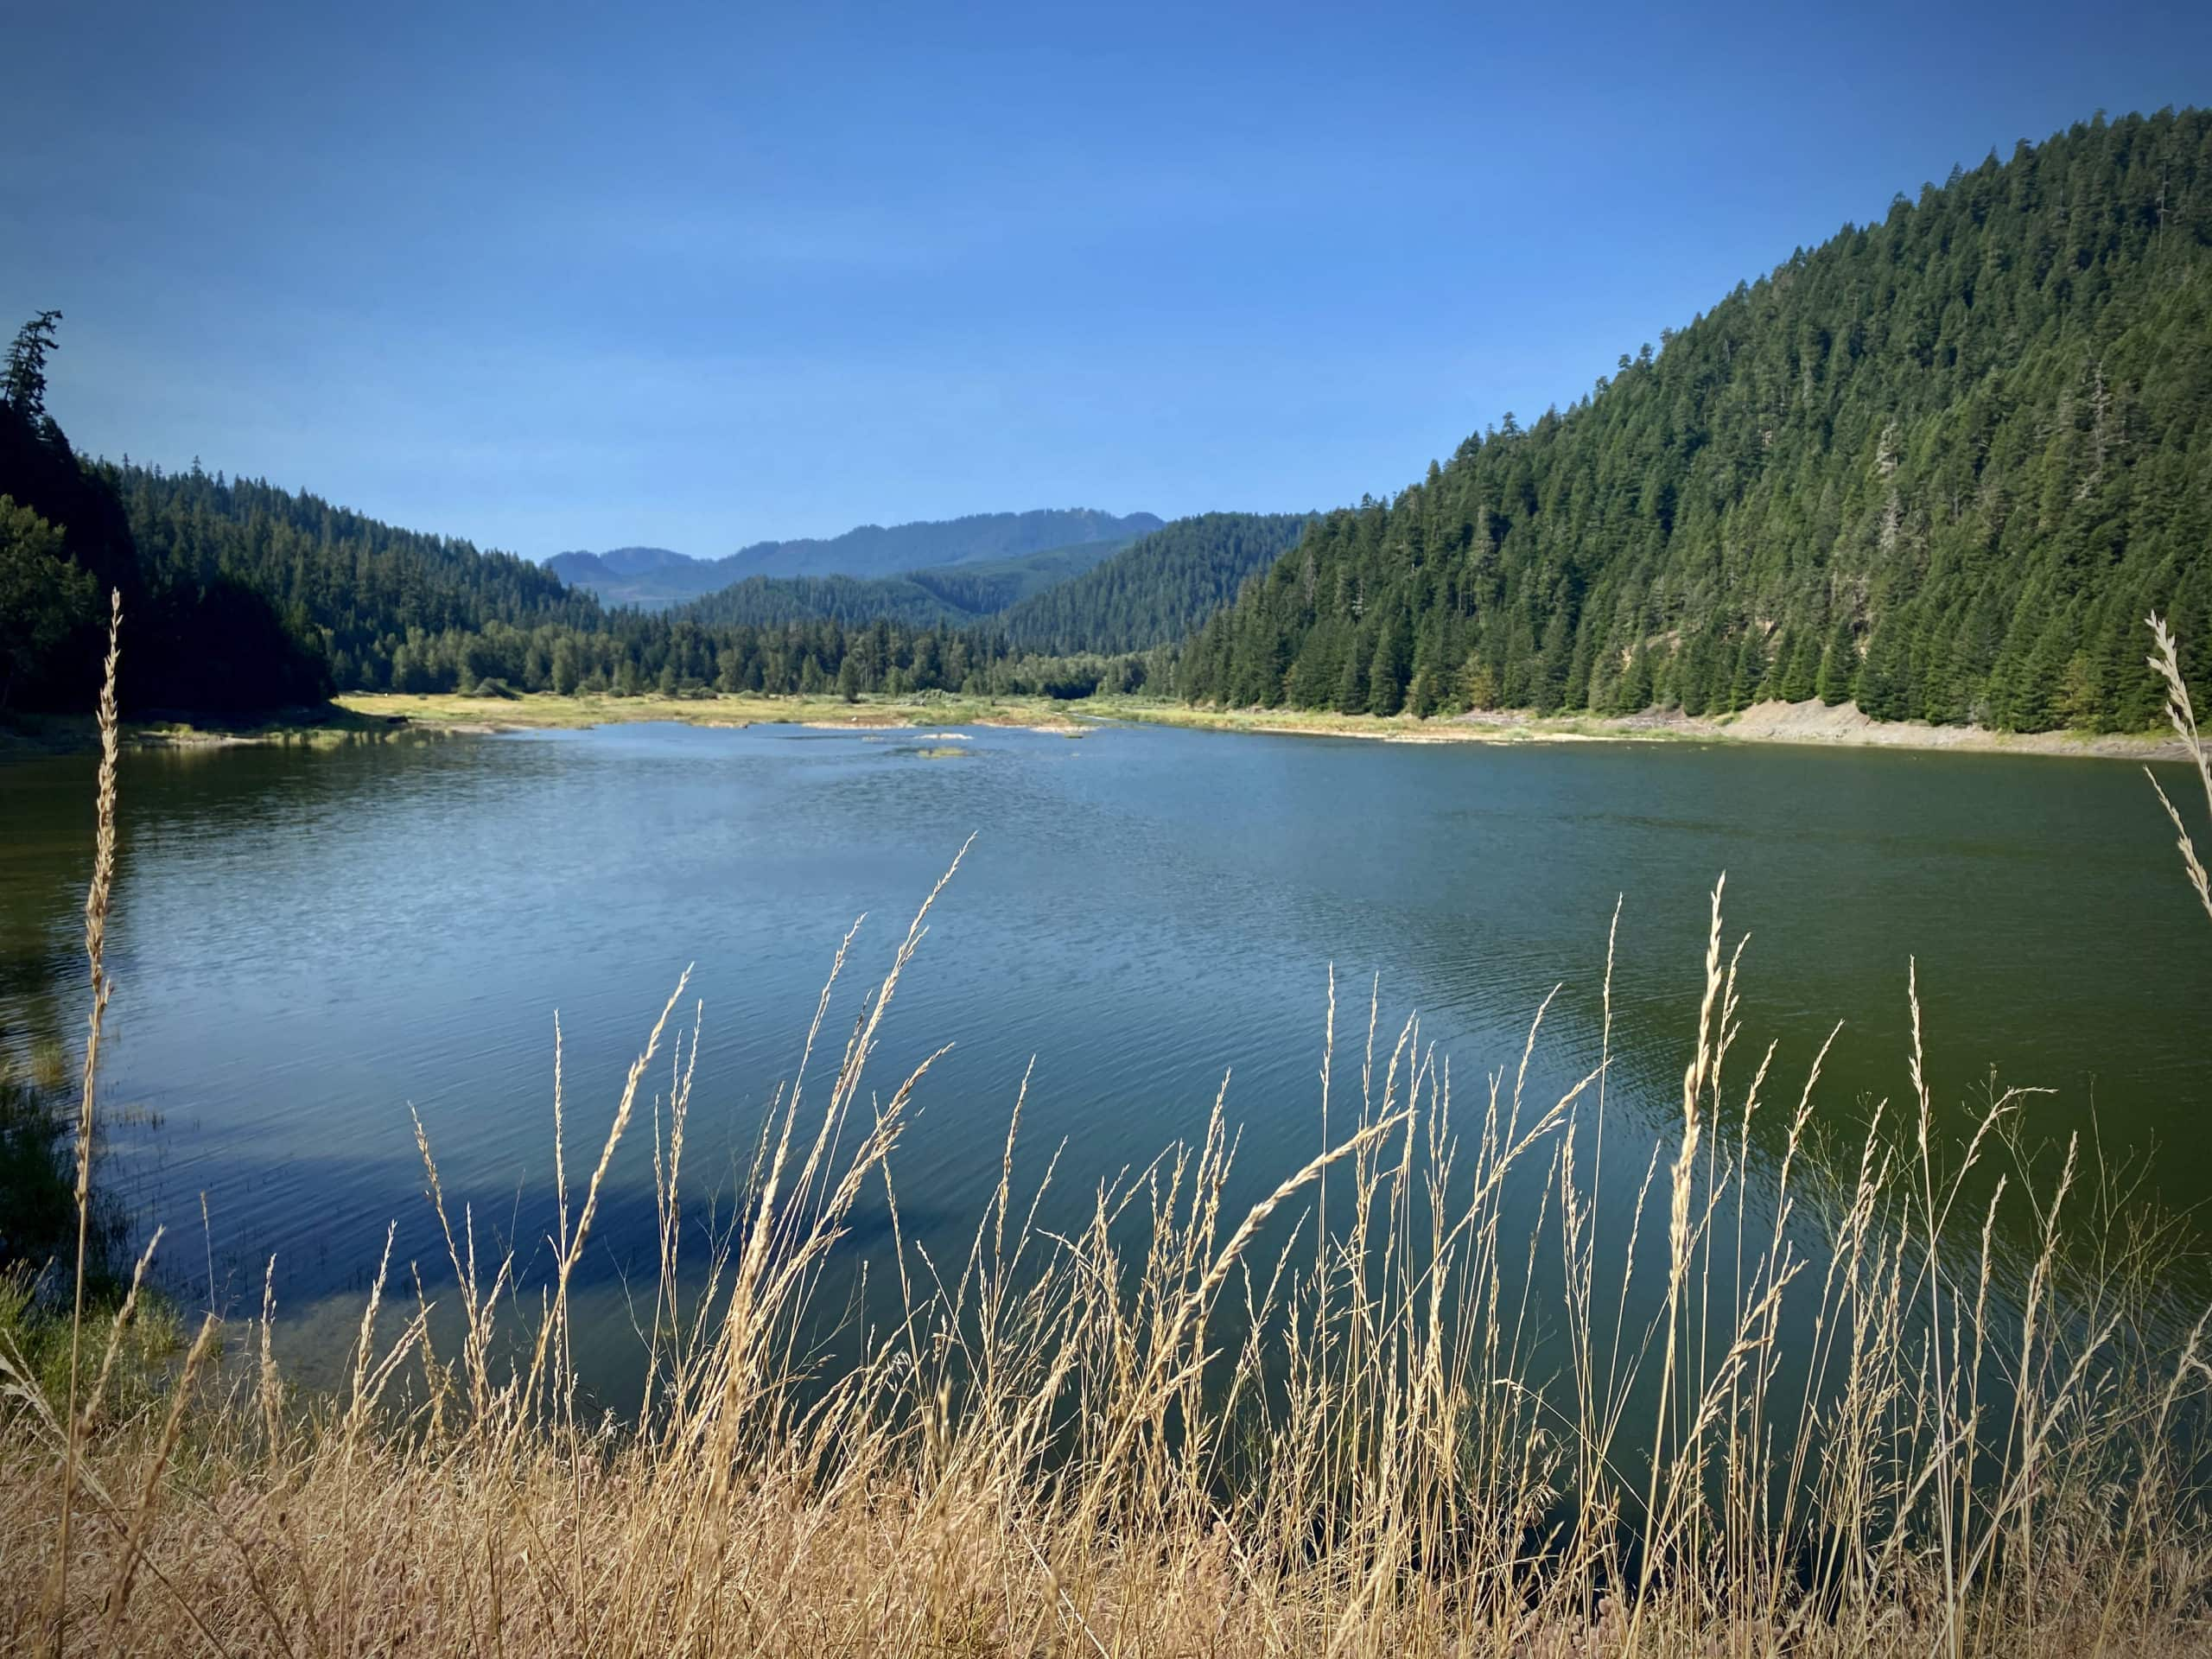 The confluence of the Middle Fork of the Willamette River and Hills Creek Reservoir.